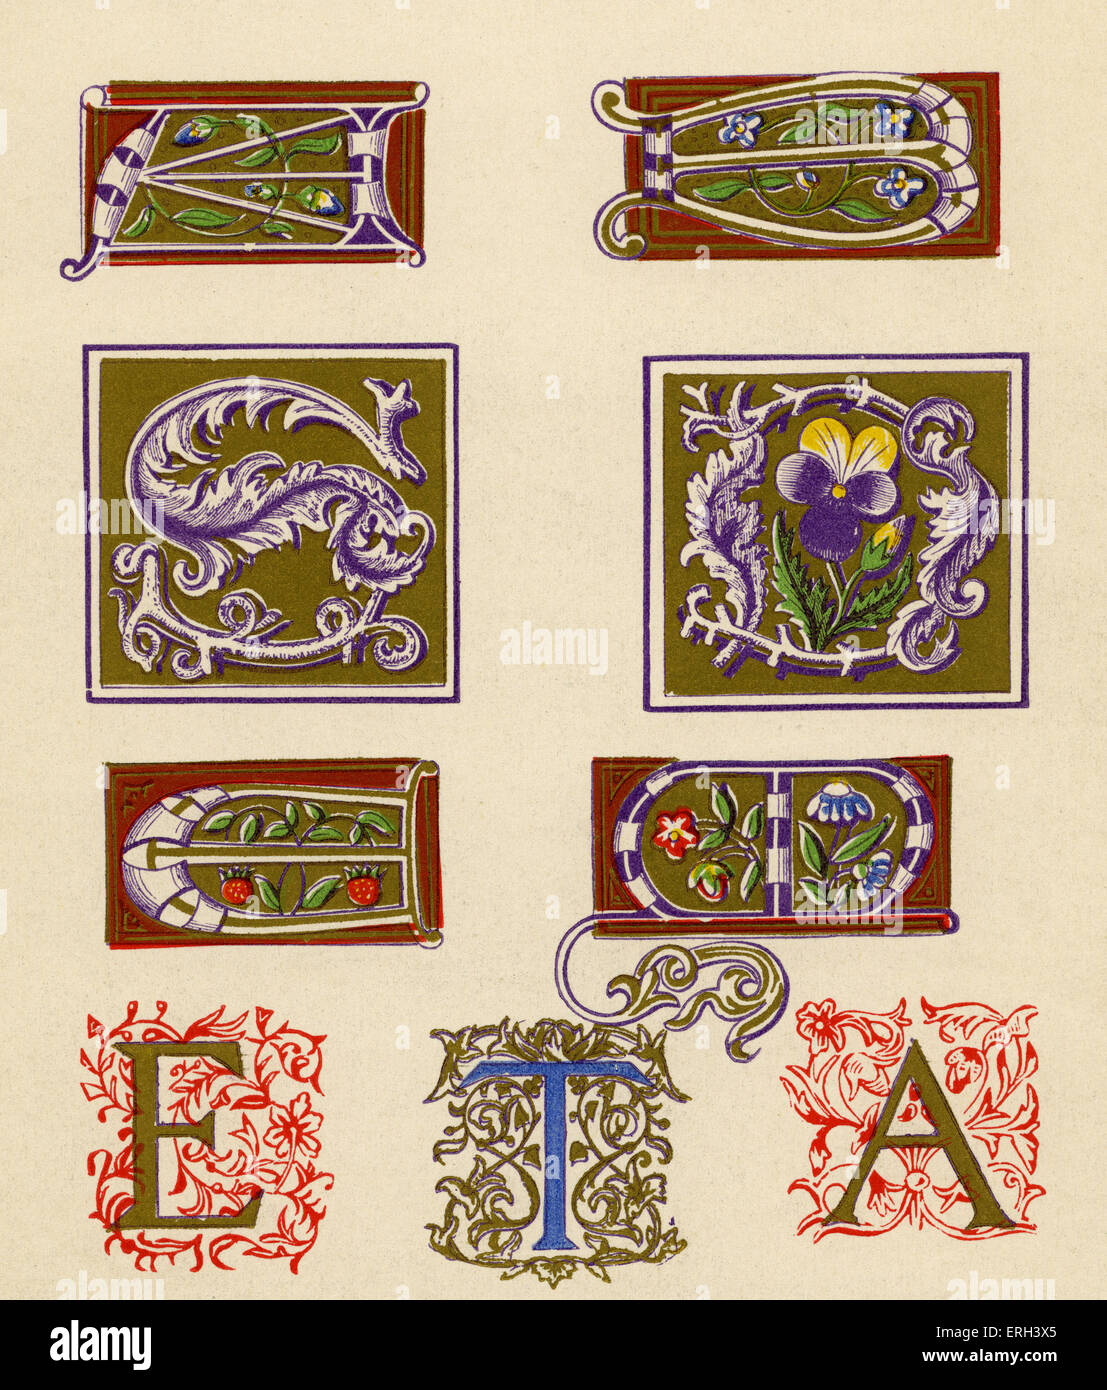 Sixteenth century illuminated letters A, B, S, D, E, M and T.  (1886 source). - Stock Image